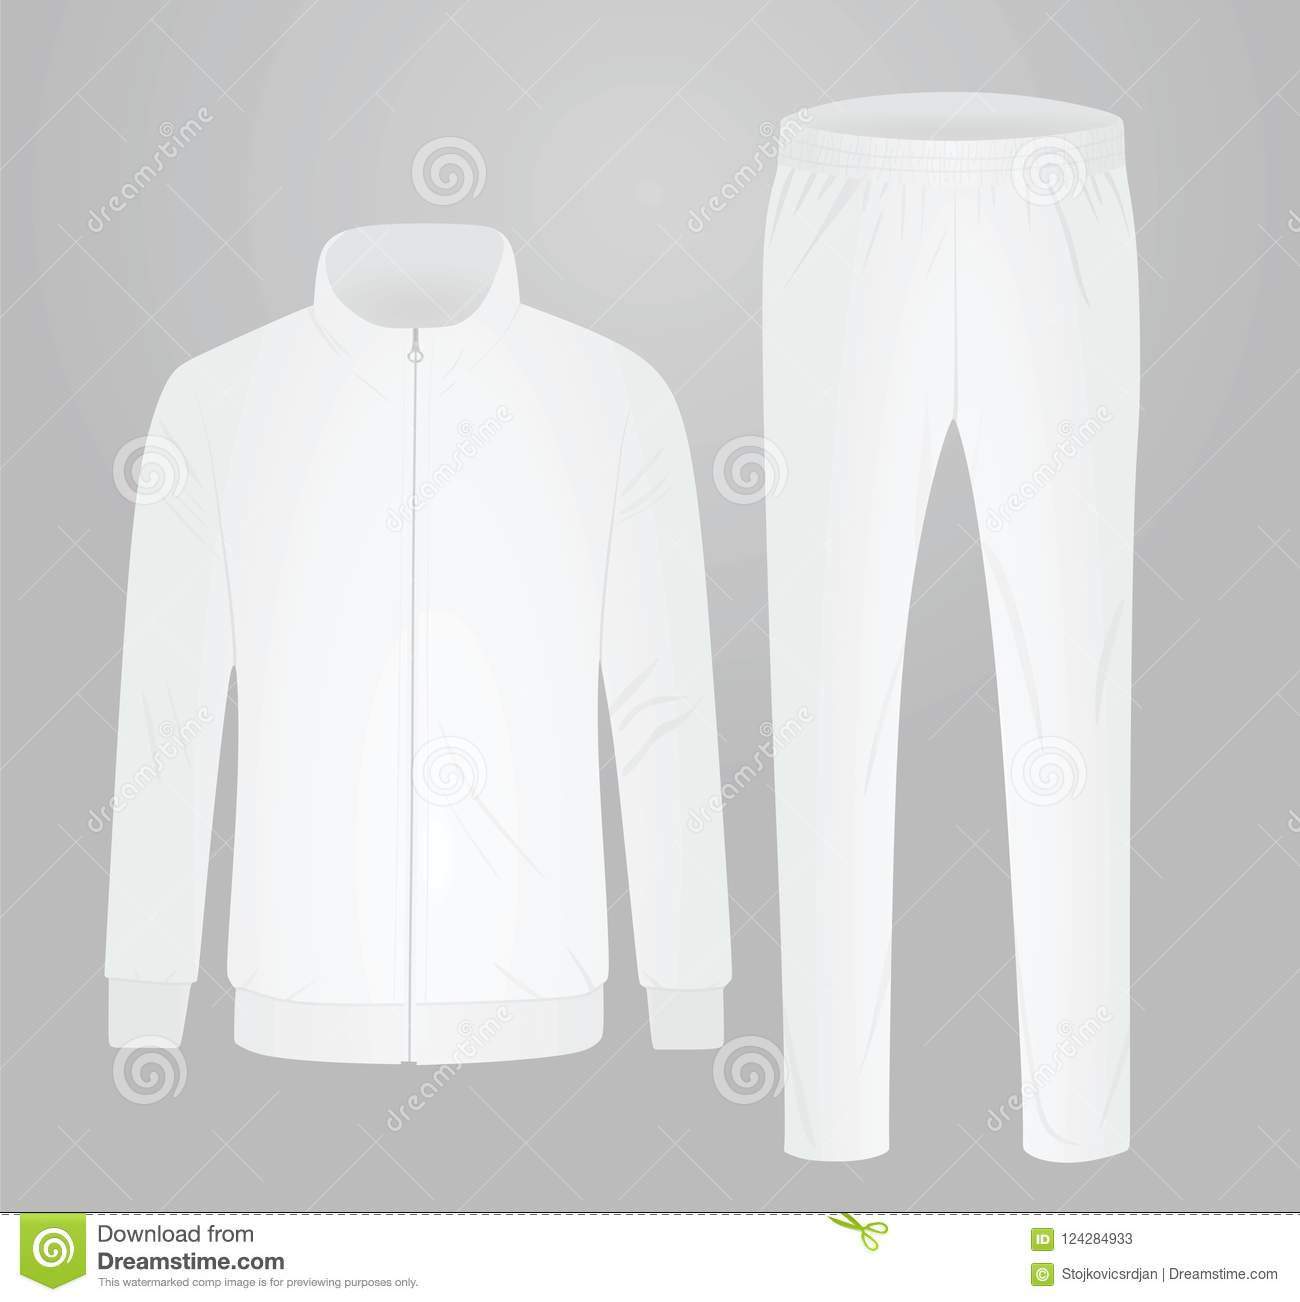 81b06574a9c7 White tracksuit set stock vector. Illustration of apparel - 124284933